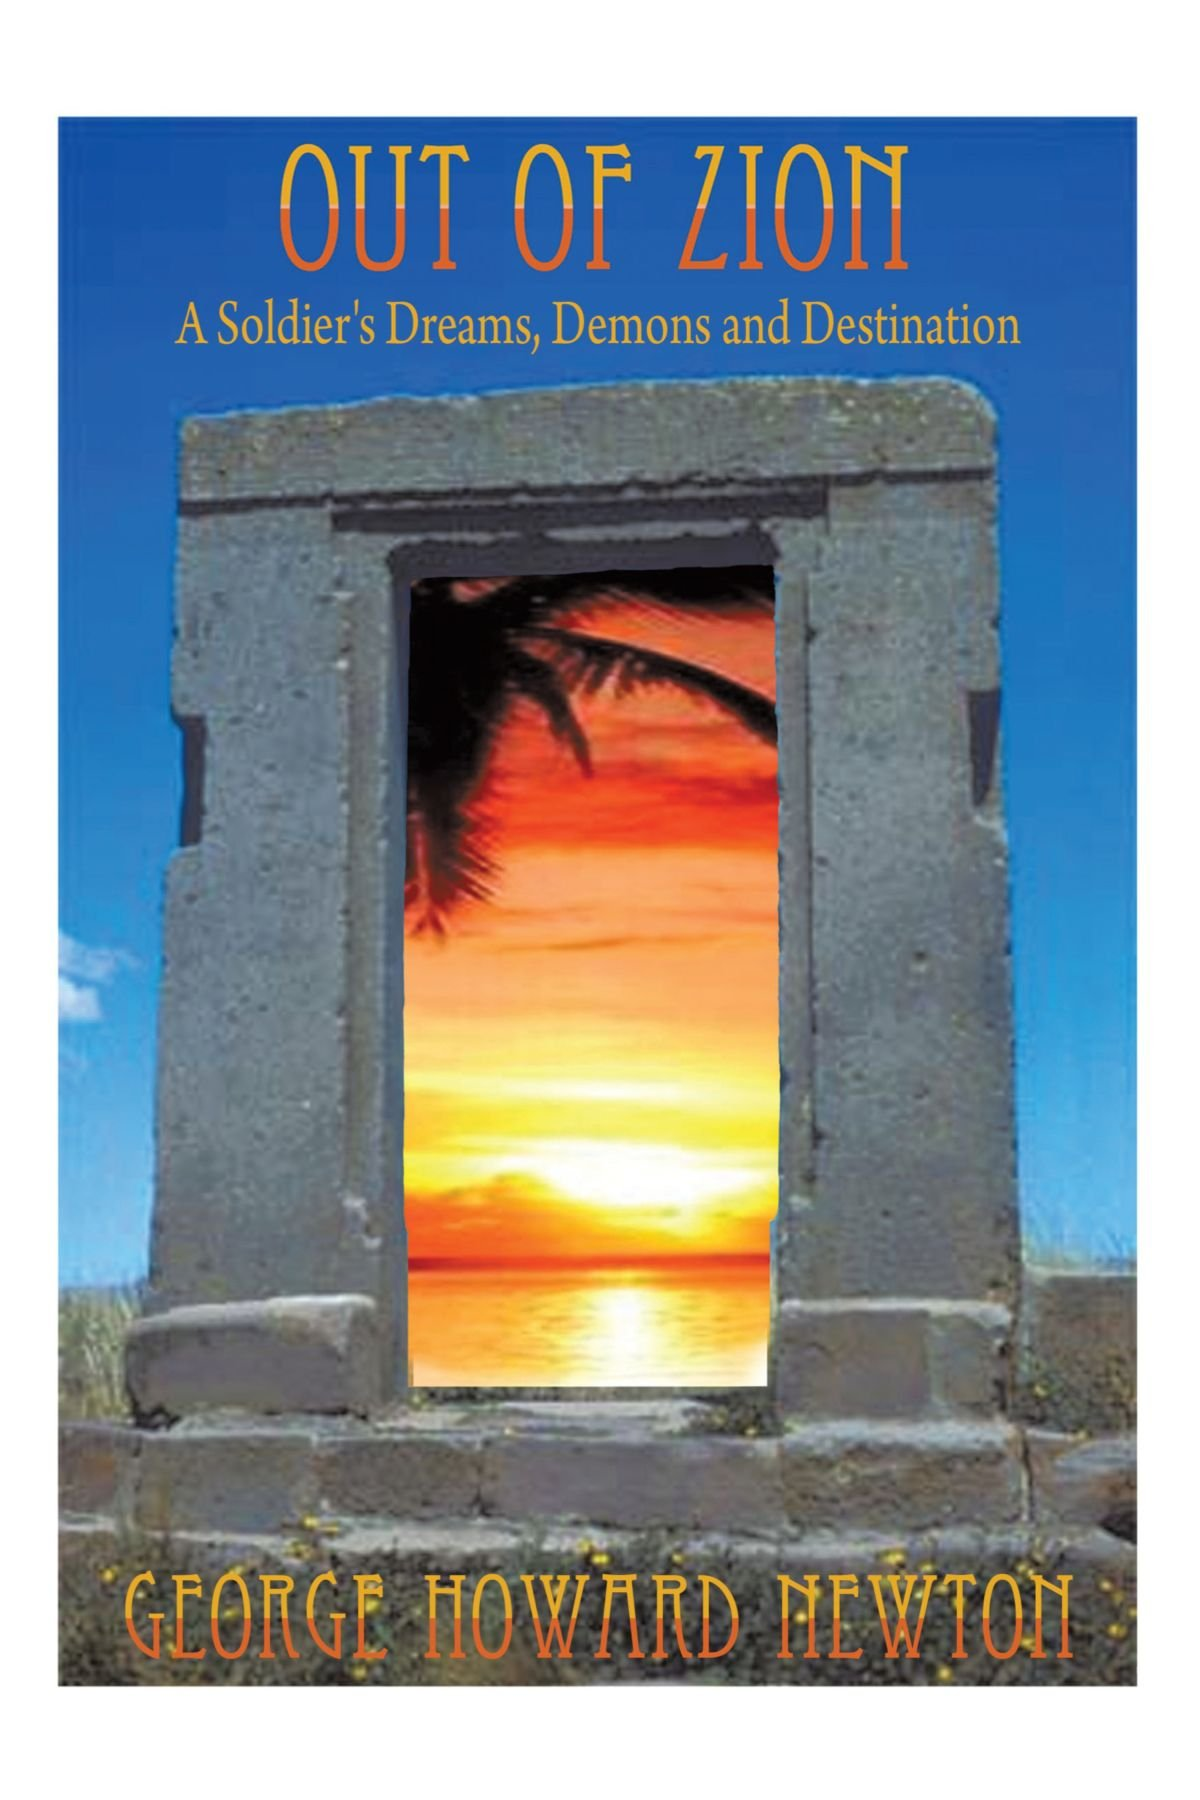 Download Out Of Zion: A Soldier's Dreams, Demons and Destination ebook